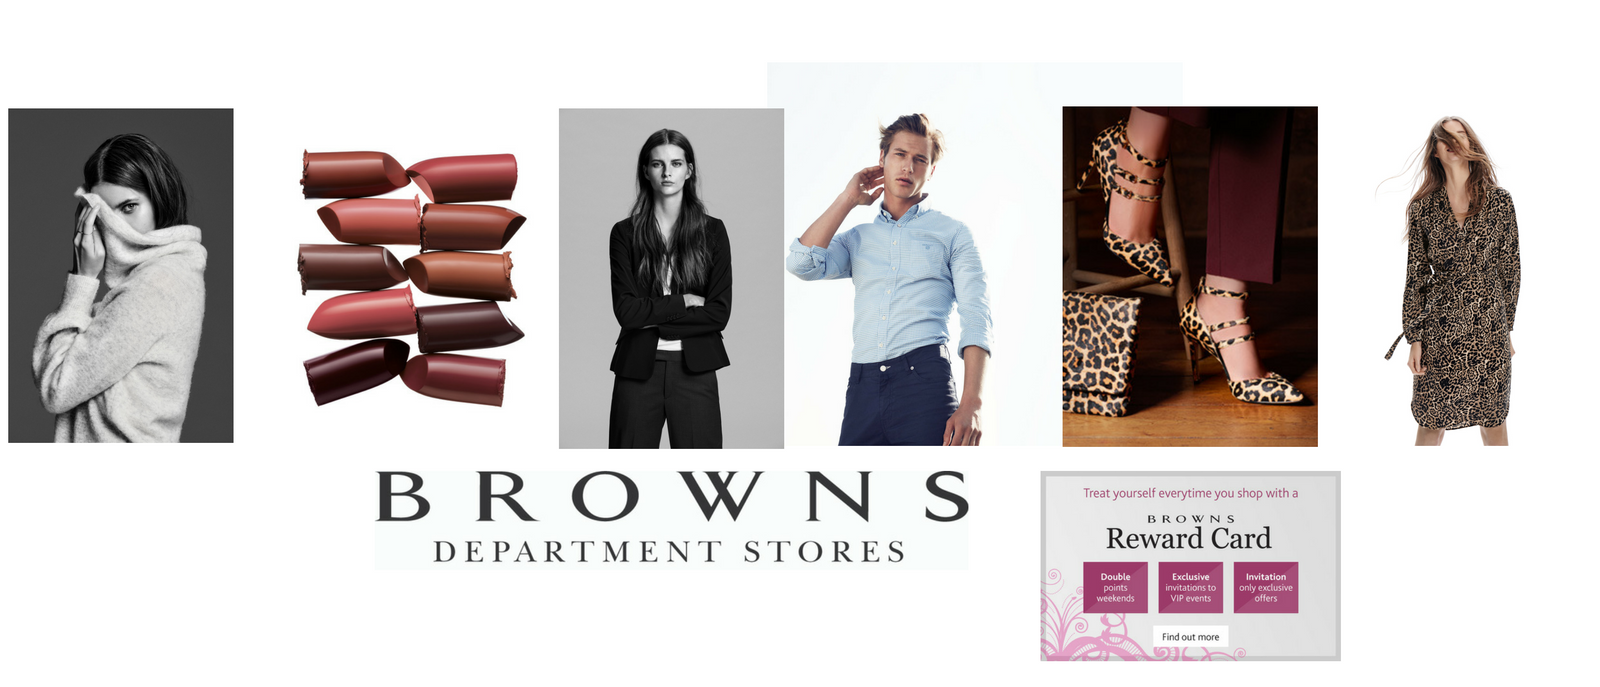 Browns-Department-stores